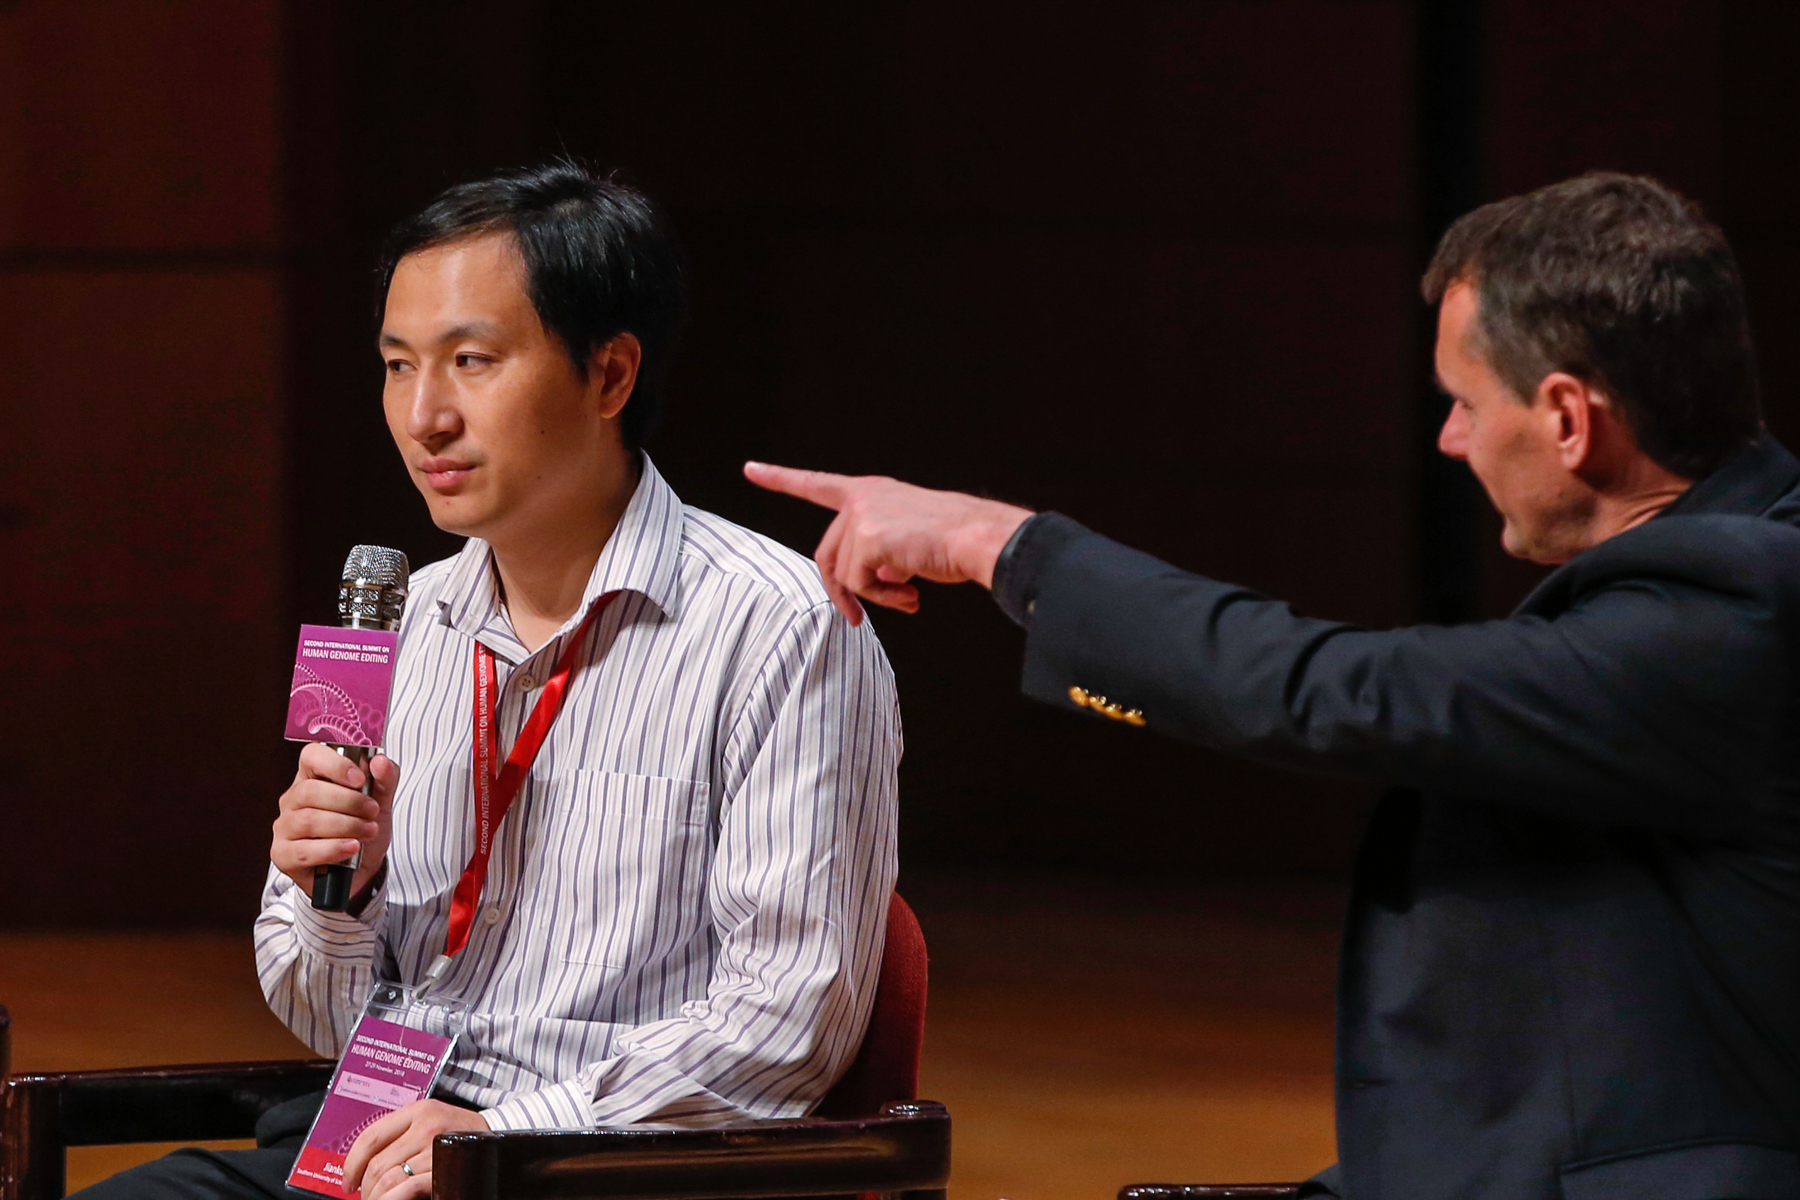 He Jiankui, a Chinese scientist, speaks during the Human Genome Editing Conference in Hong Kong, November 28. Two days prior to the conference, He announced that he created the world's first gnomically-edited babies. The experiment was regarded as unethical by many scientists, but He has said he is proud of his work.  (Kin Cheung/AP Photo)